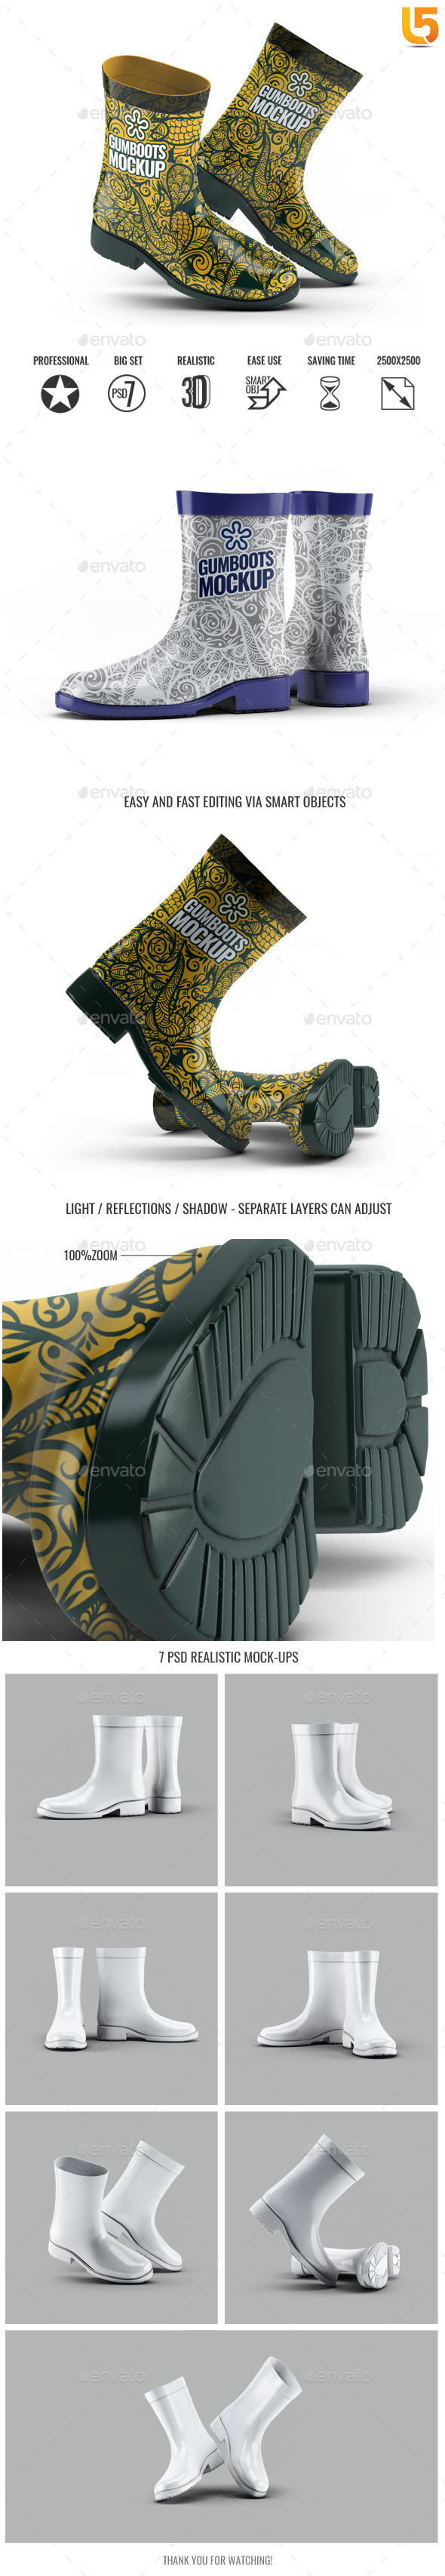 GraphicRiver Short Ankle Gumboots Mock-Up 20491684